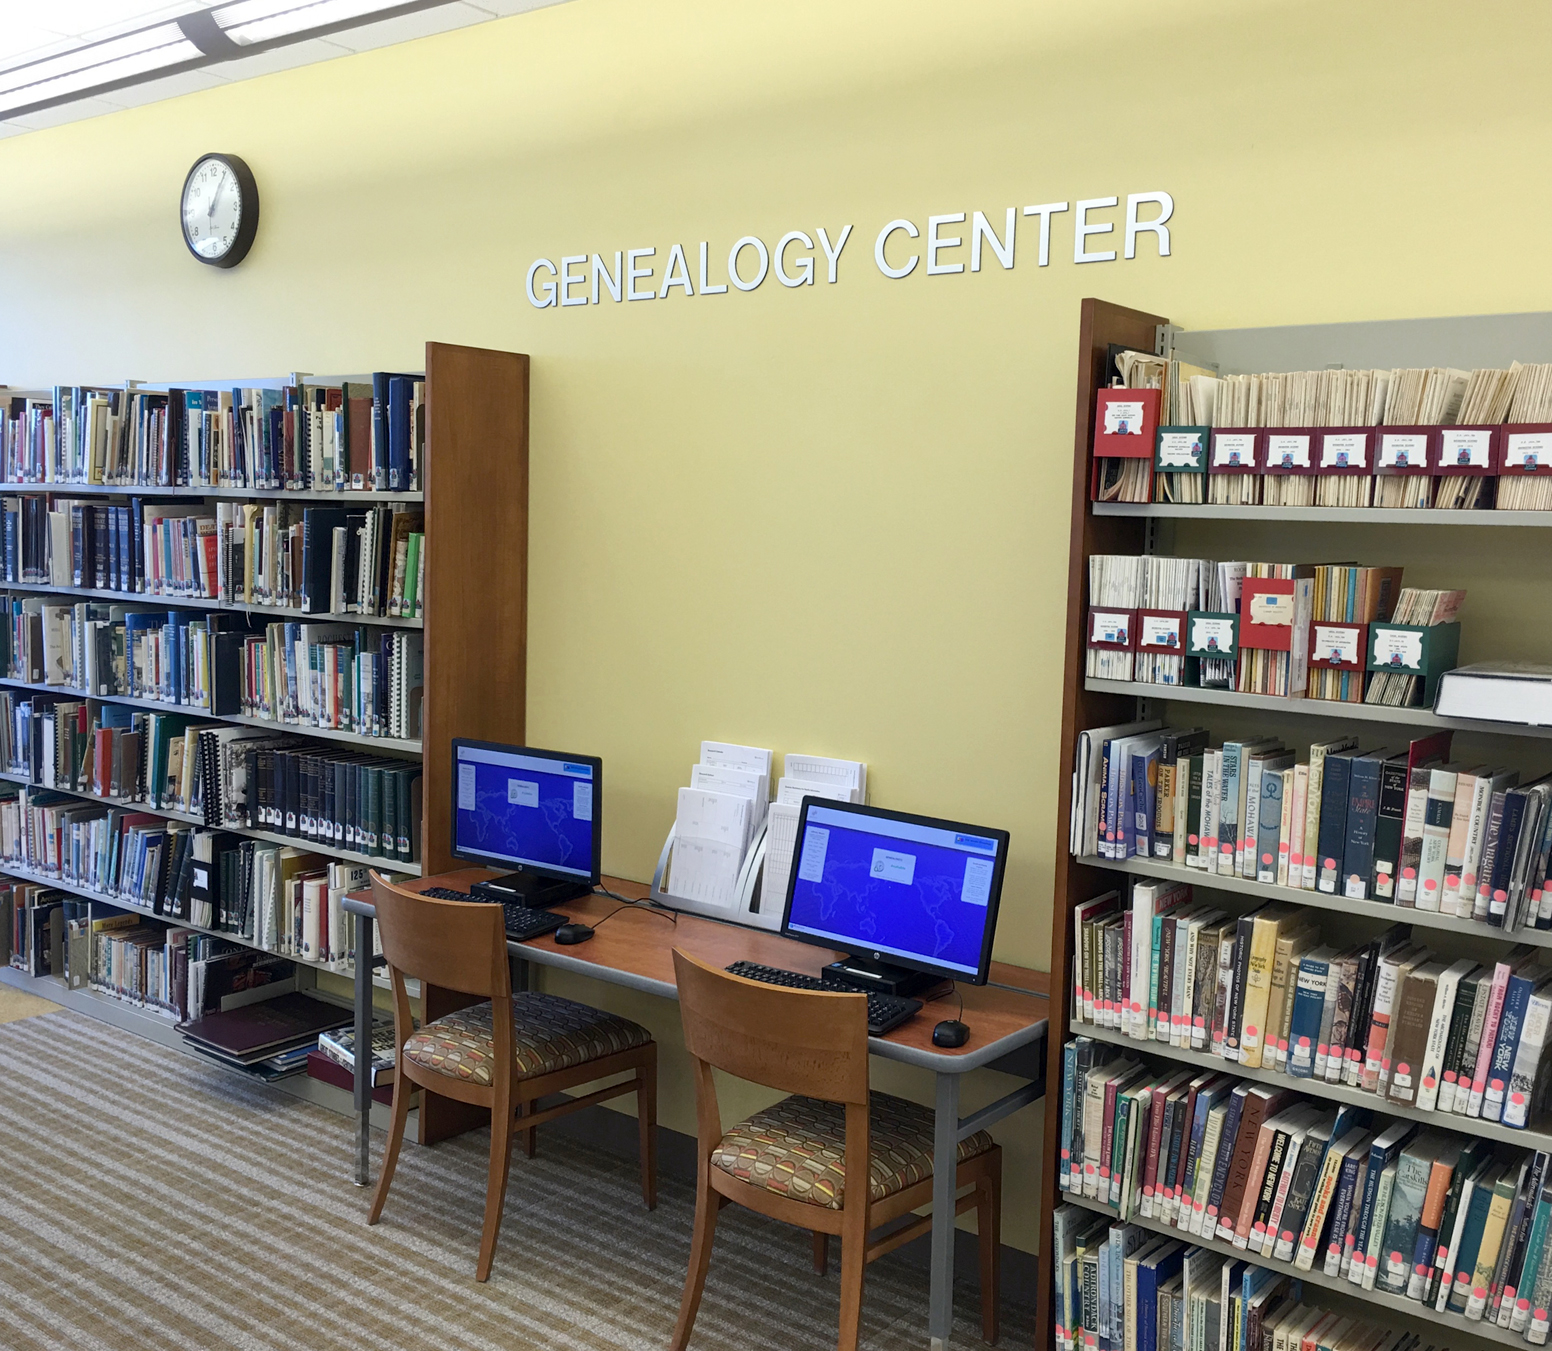 The new Genealogy Center located on the second floor of the Gates Public Library opens to the public on Thursday, March 24. Provided photo